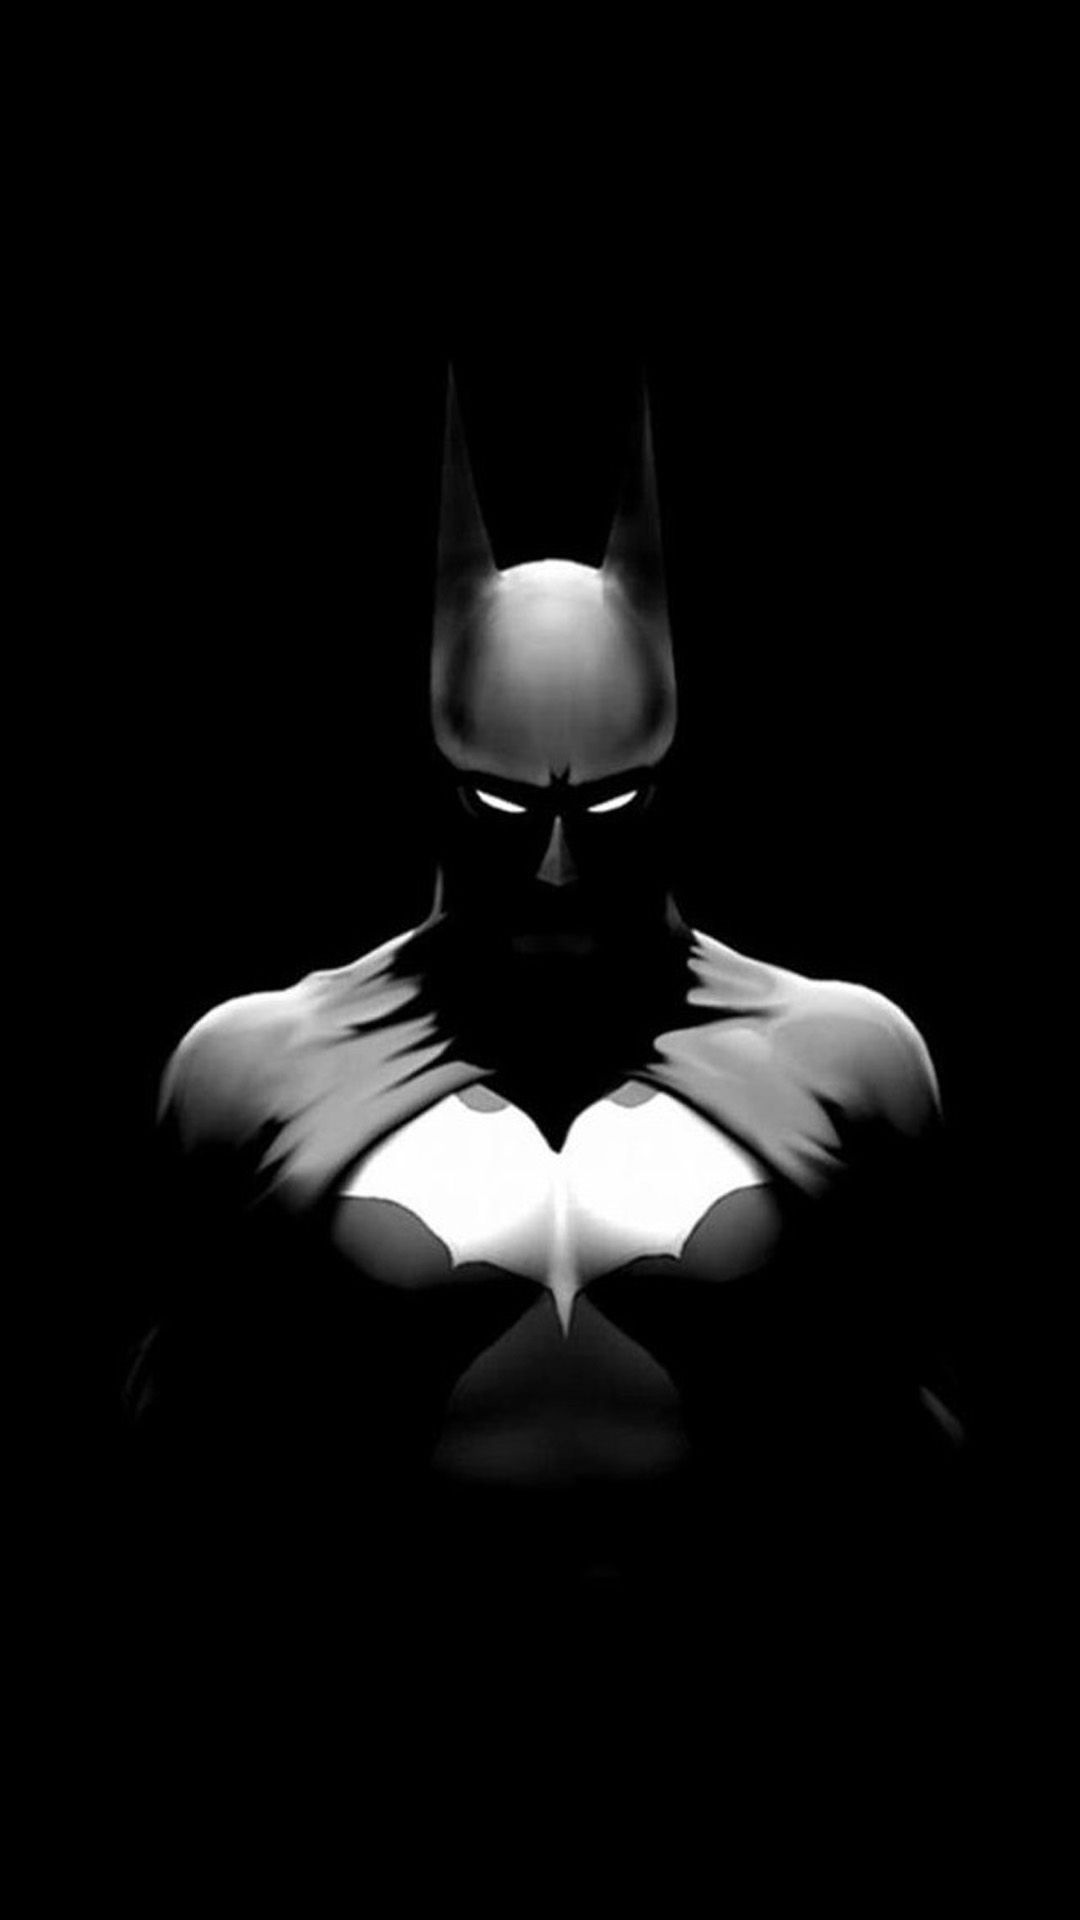 Batman In Dark Background Iphone 6 Wallpaper Download Iphone Wallpapers Ipad Wallpapers One Stop Download Batman Comic Wallpaper Batman Backgrounds Batman